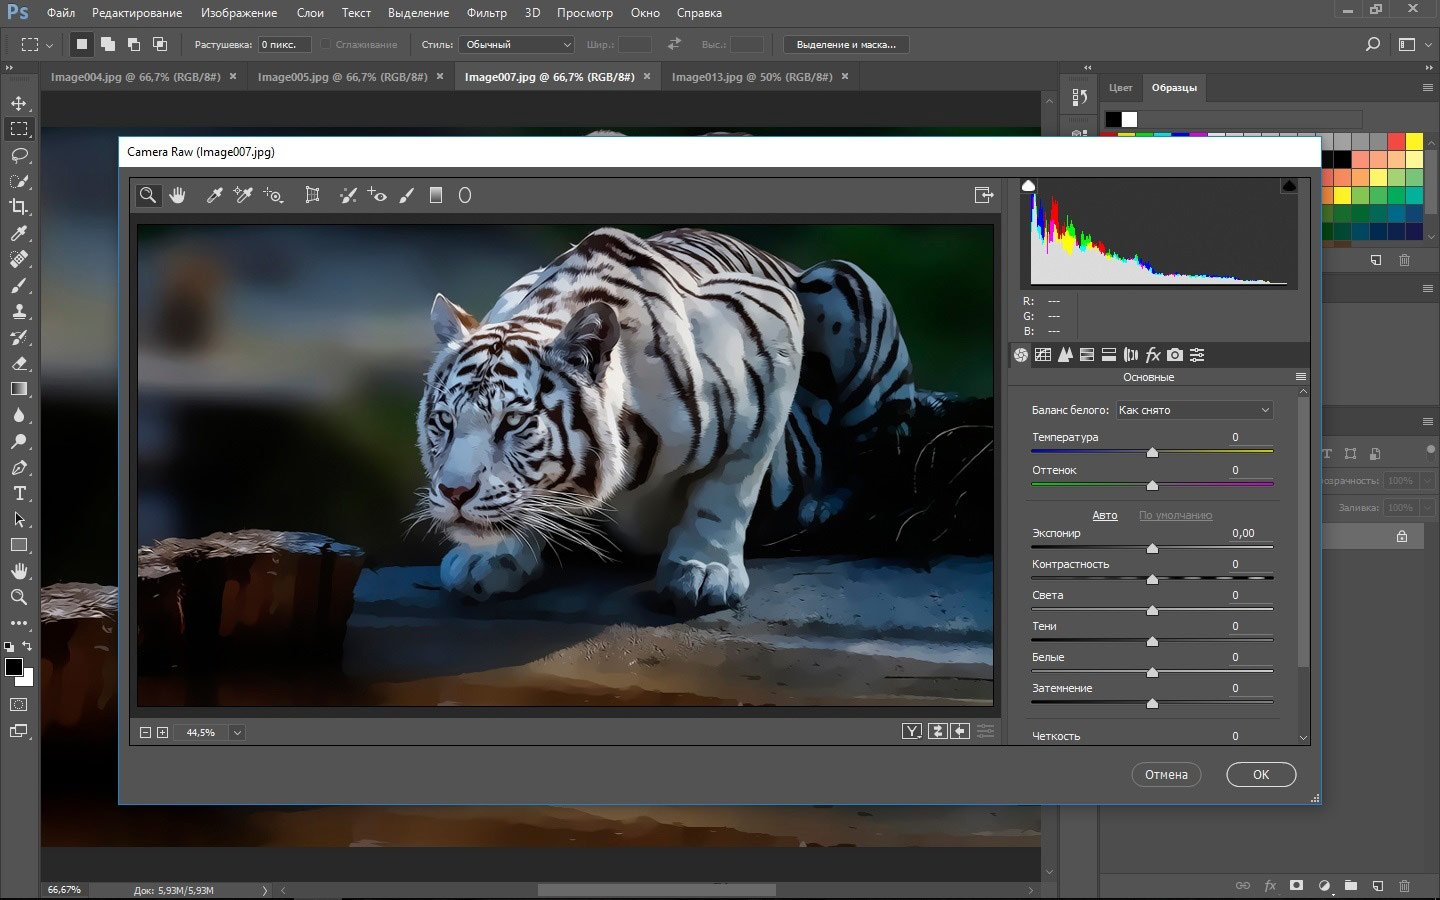 Фоторедактор для компьютера Adobe Photoshop